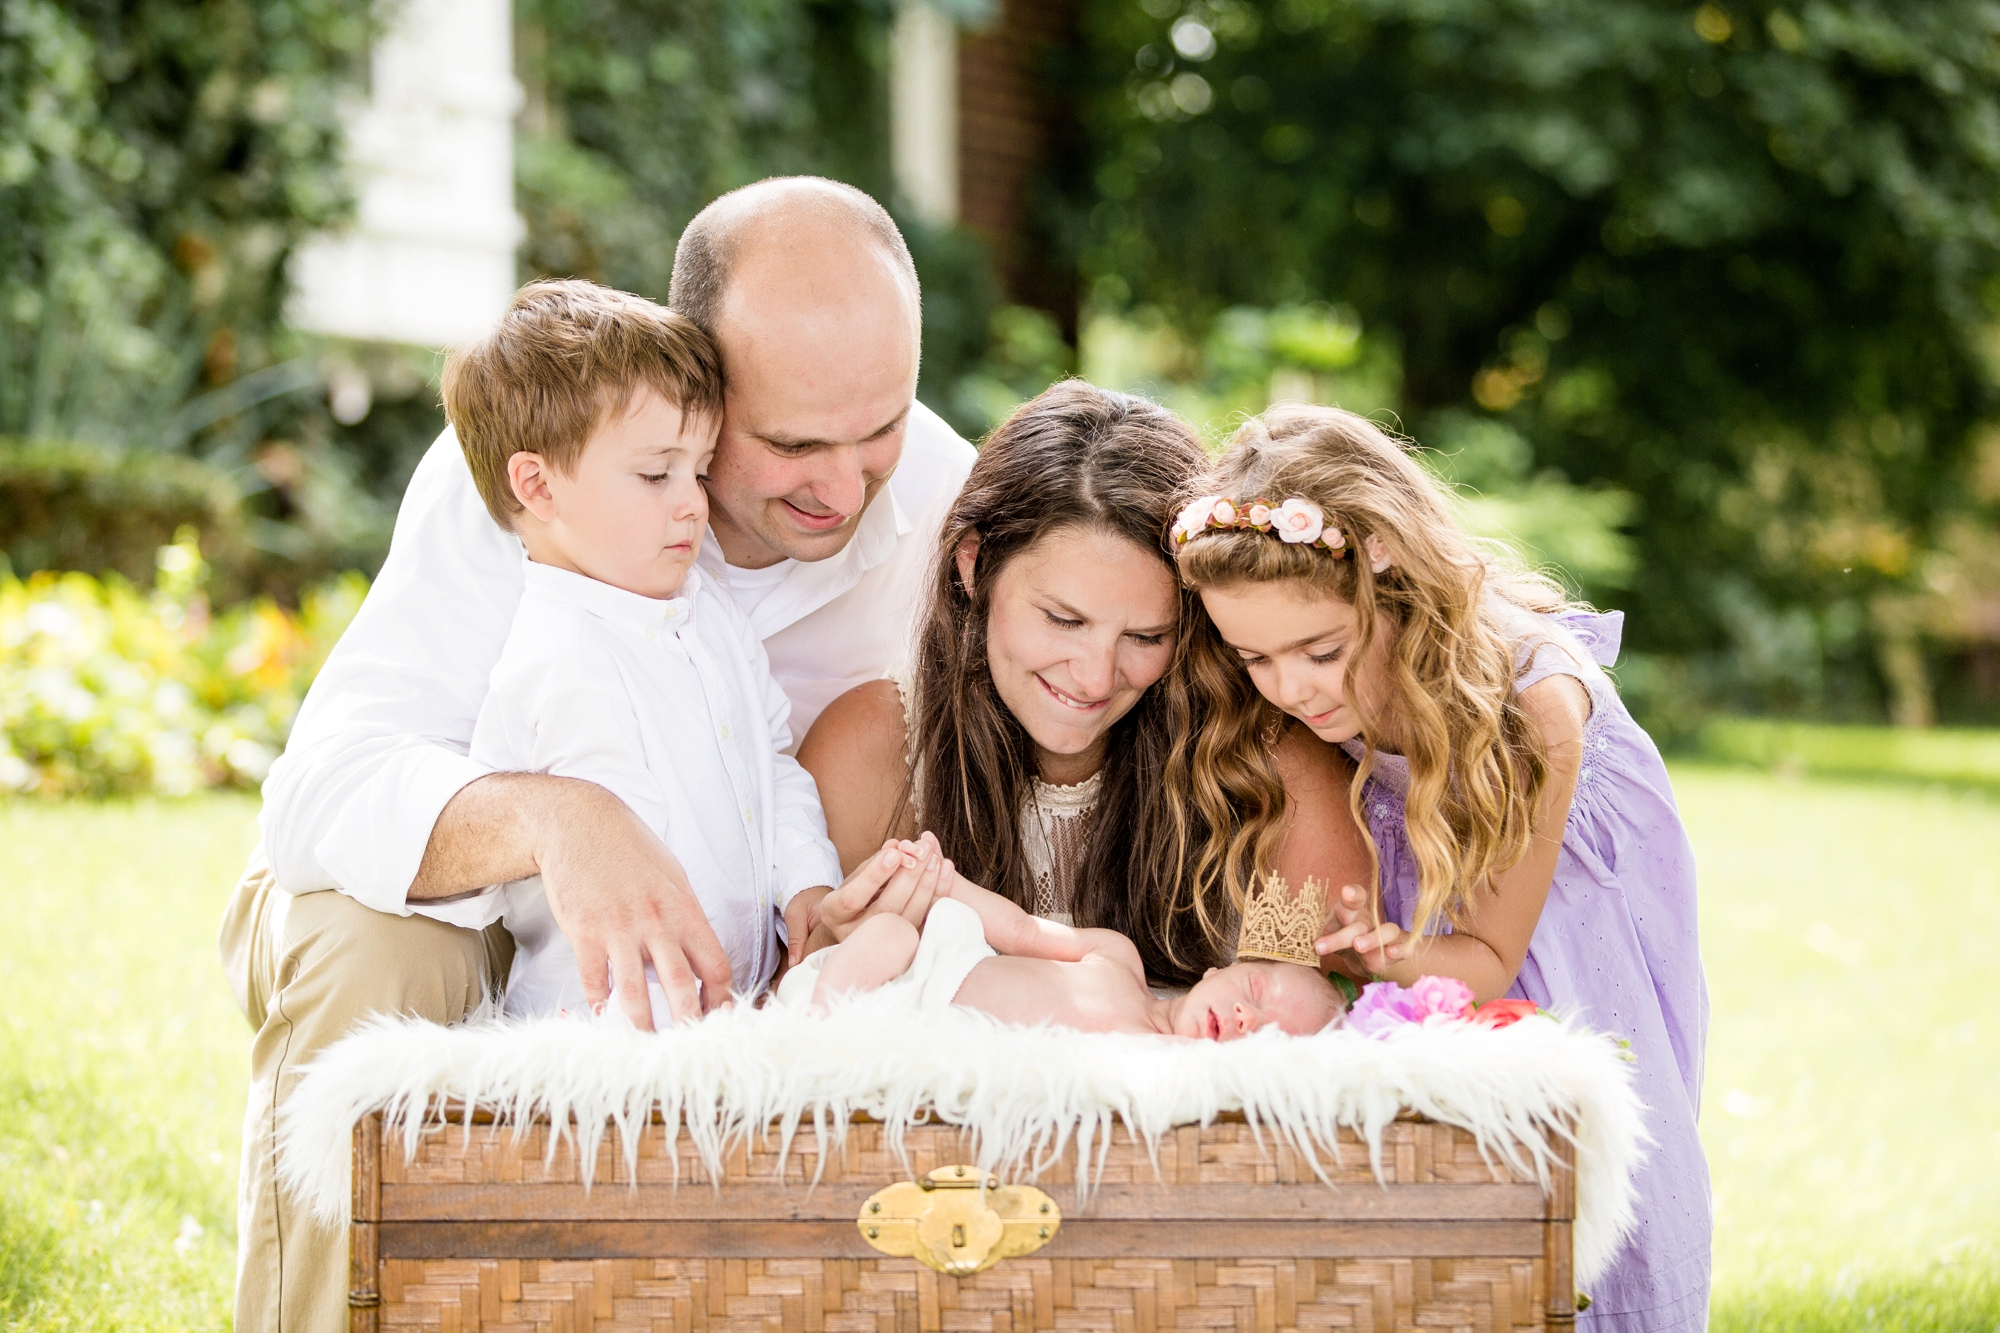 emsworth family photographer, pittsburgh family photographer, cranberry township family photorapher, butler family photographer